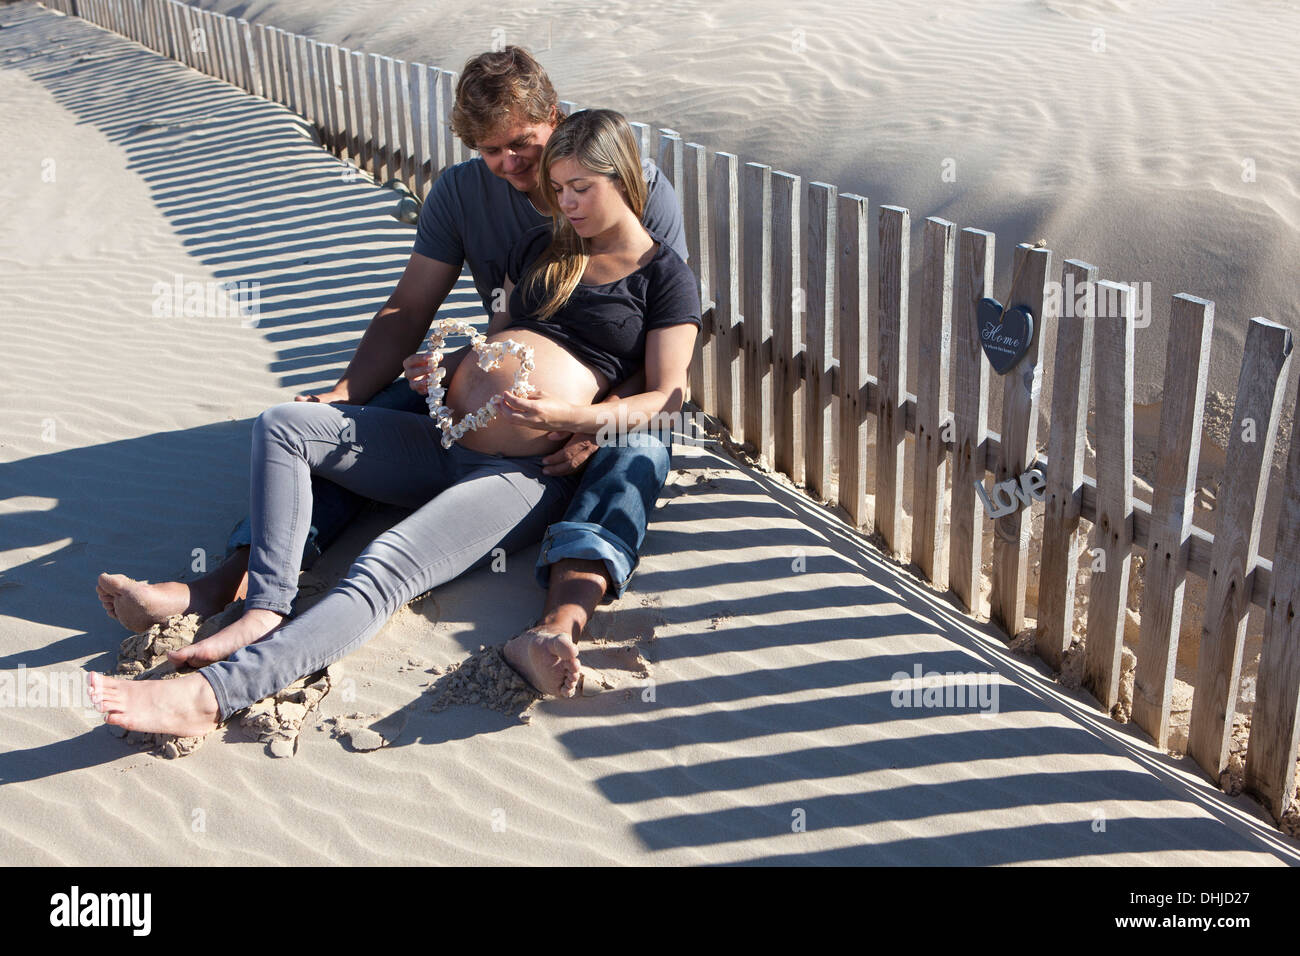 A pregnant woman and her partner sitting on the beach - Stock Image